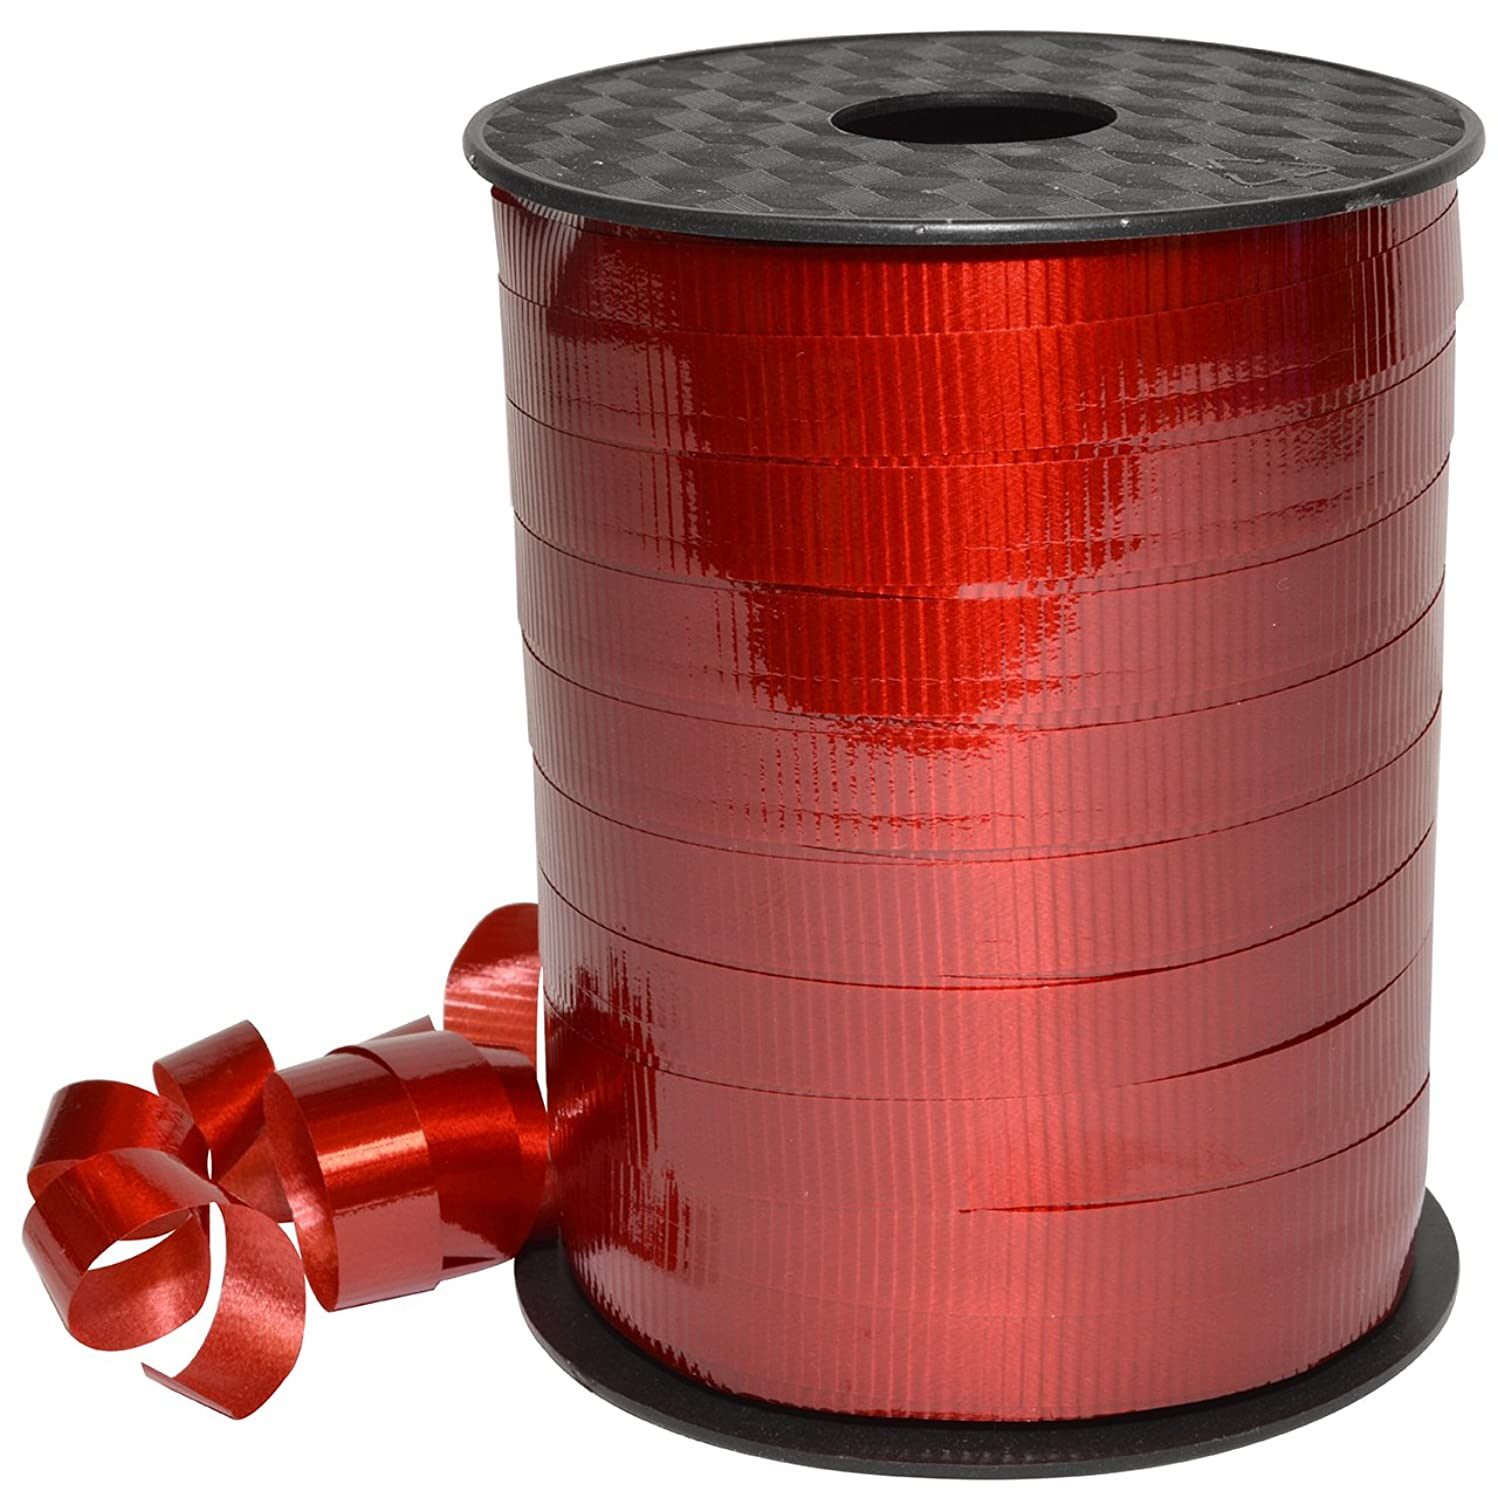 Morex Ribbon Polypropylene, 3/8 inch by 250 Yards, Red, Item 18310/250-609 Lucky Glossy Curling Ribbon, 3/8